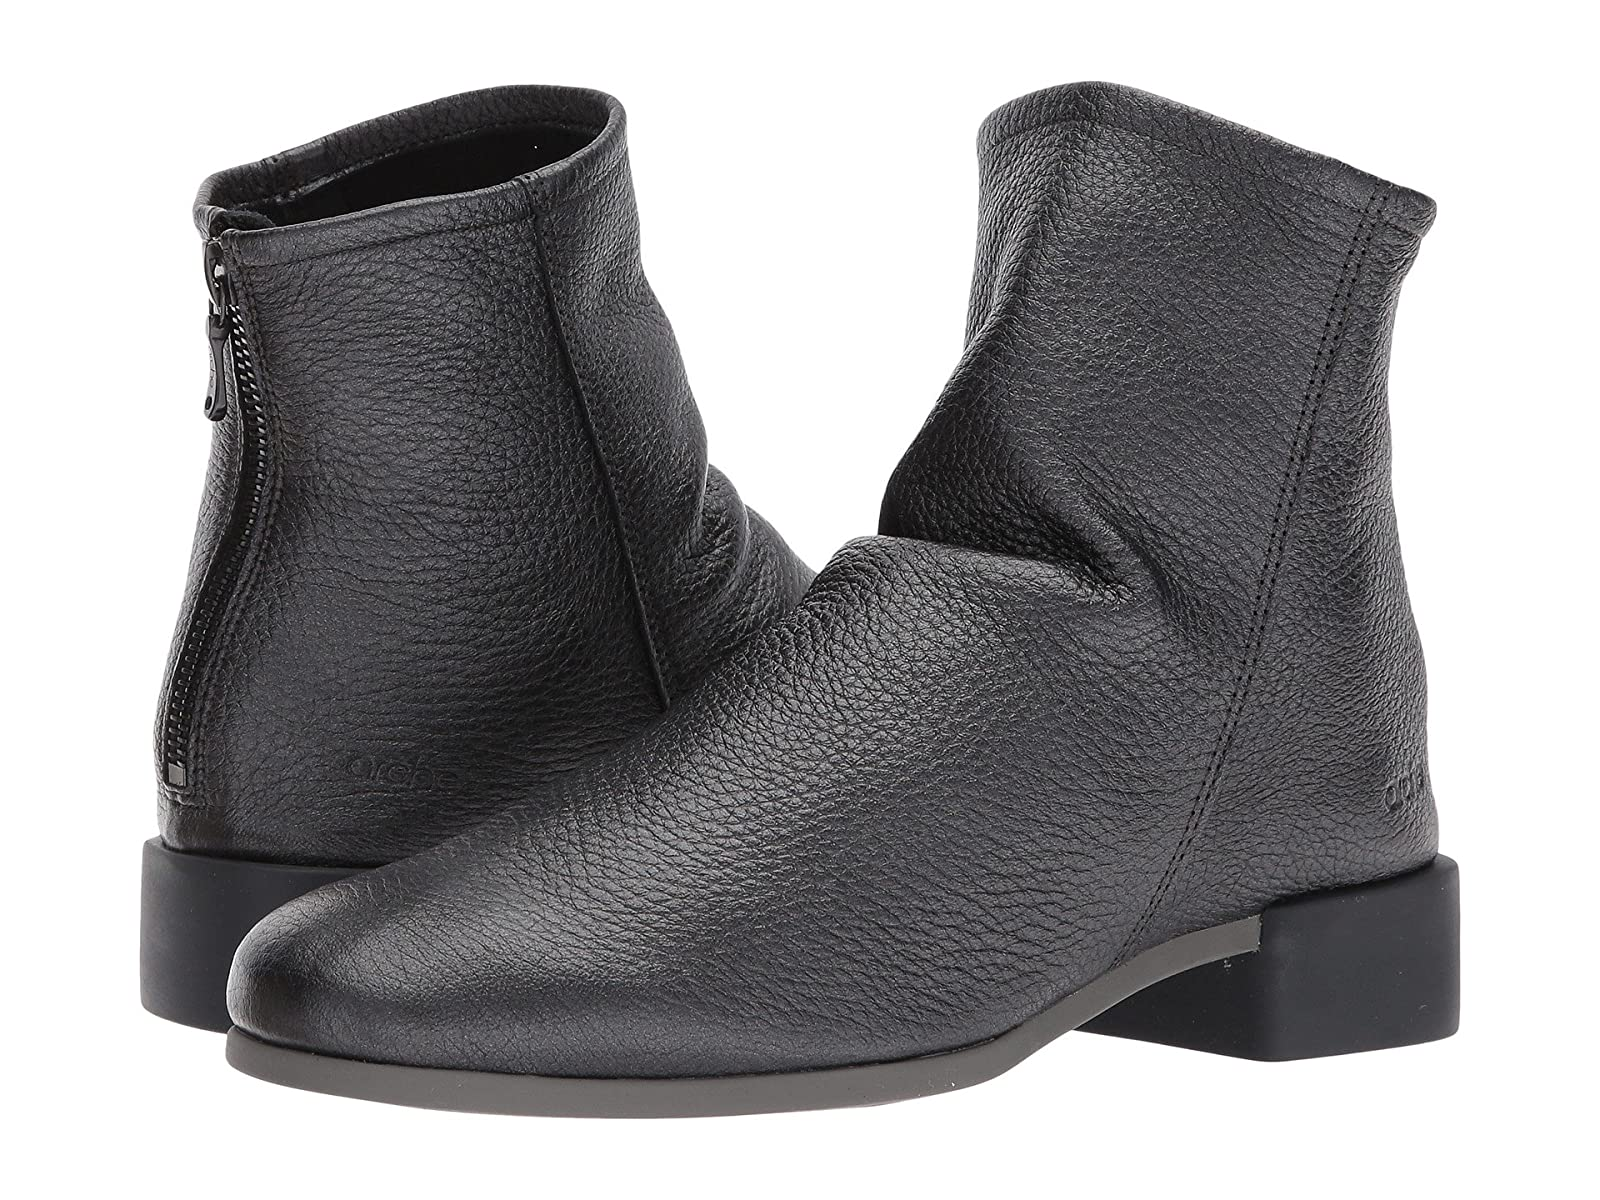 Arche TwinnySelling fashionable and eye-catching shoes